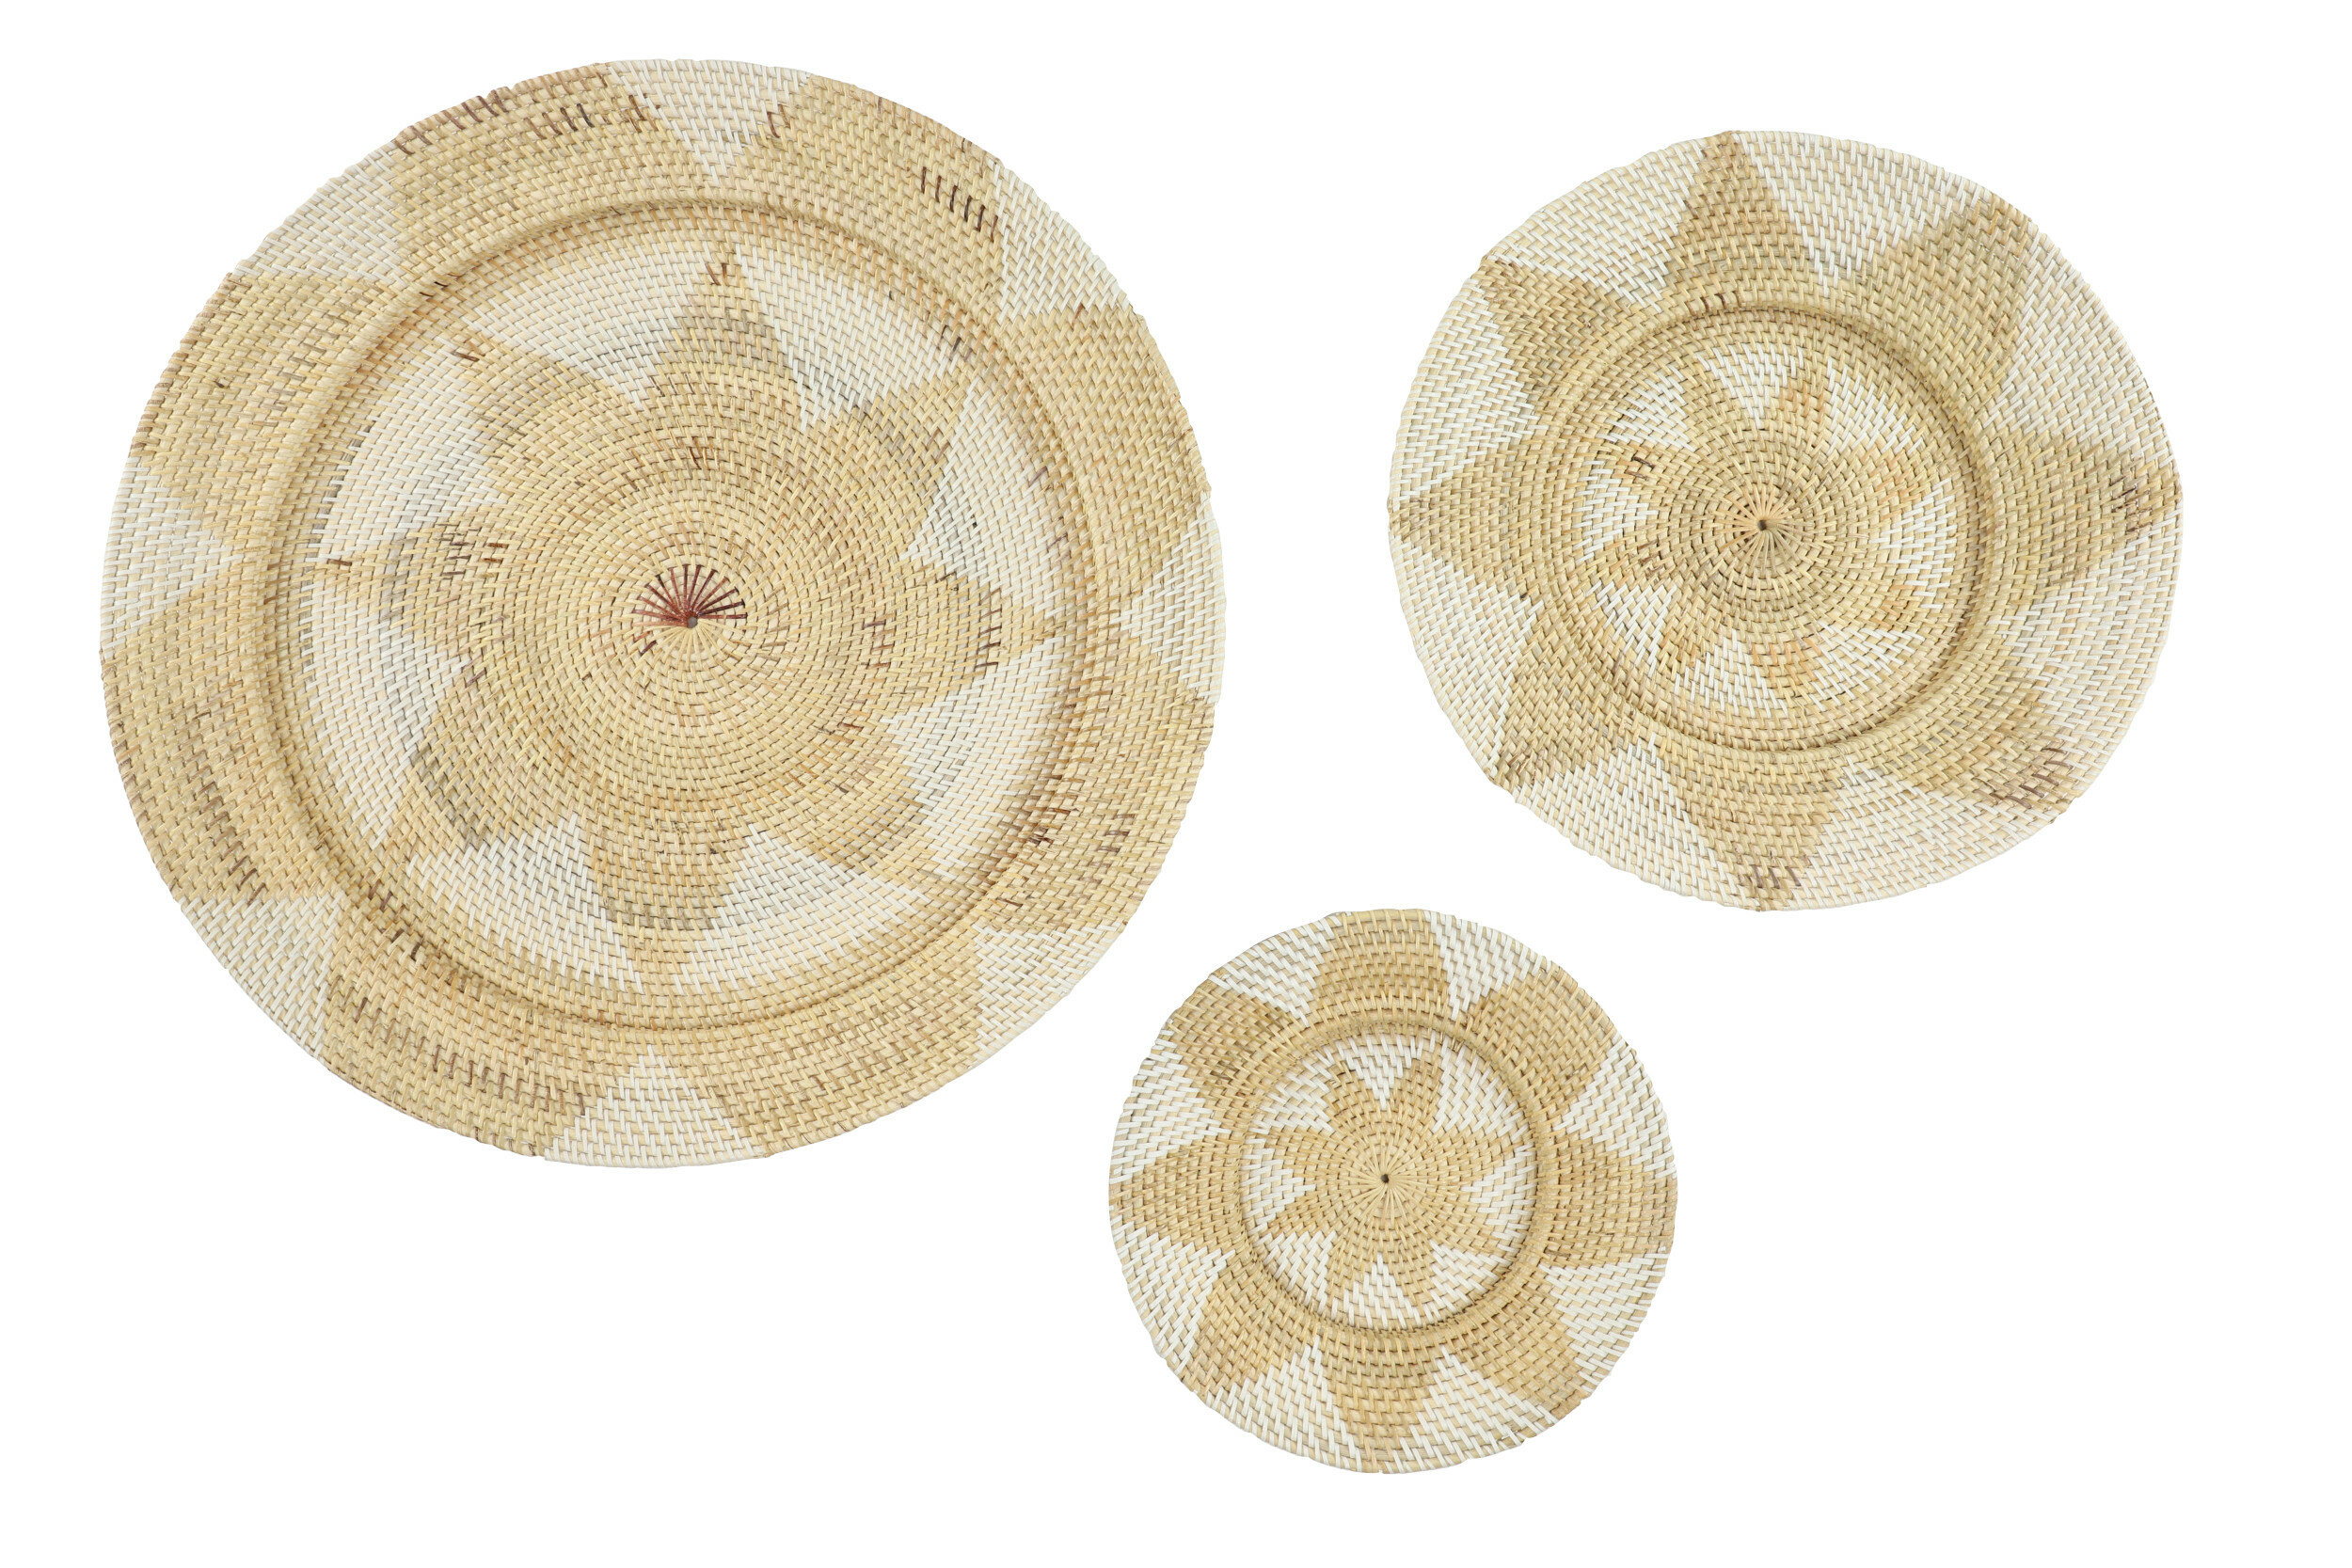 3 Piece Decorative And Round Wicker Basket Tray With Star Design Wall Décor  Set with 3 Piece Ceramic Flowers Wall Decor Sets (Image 3 of 30)